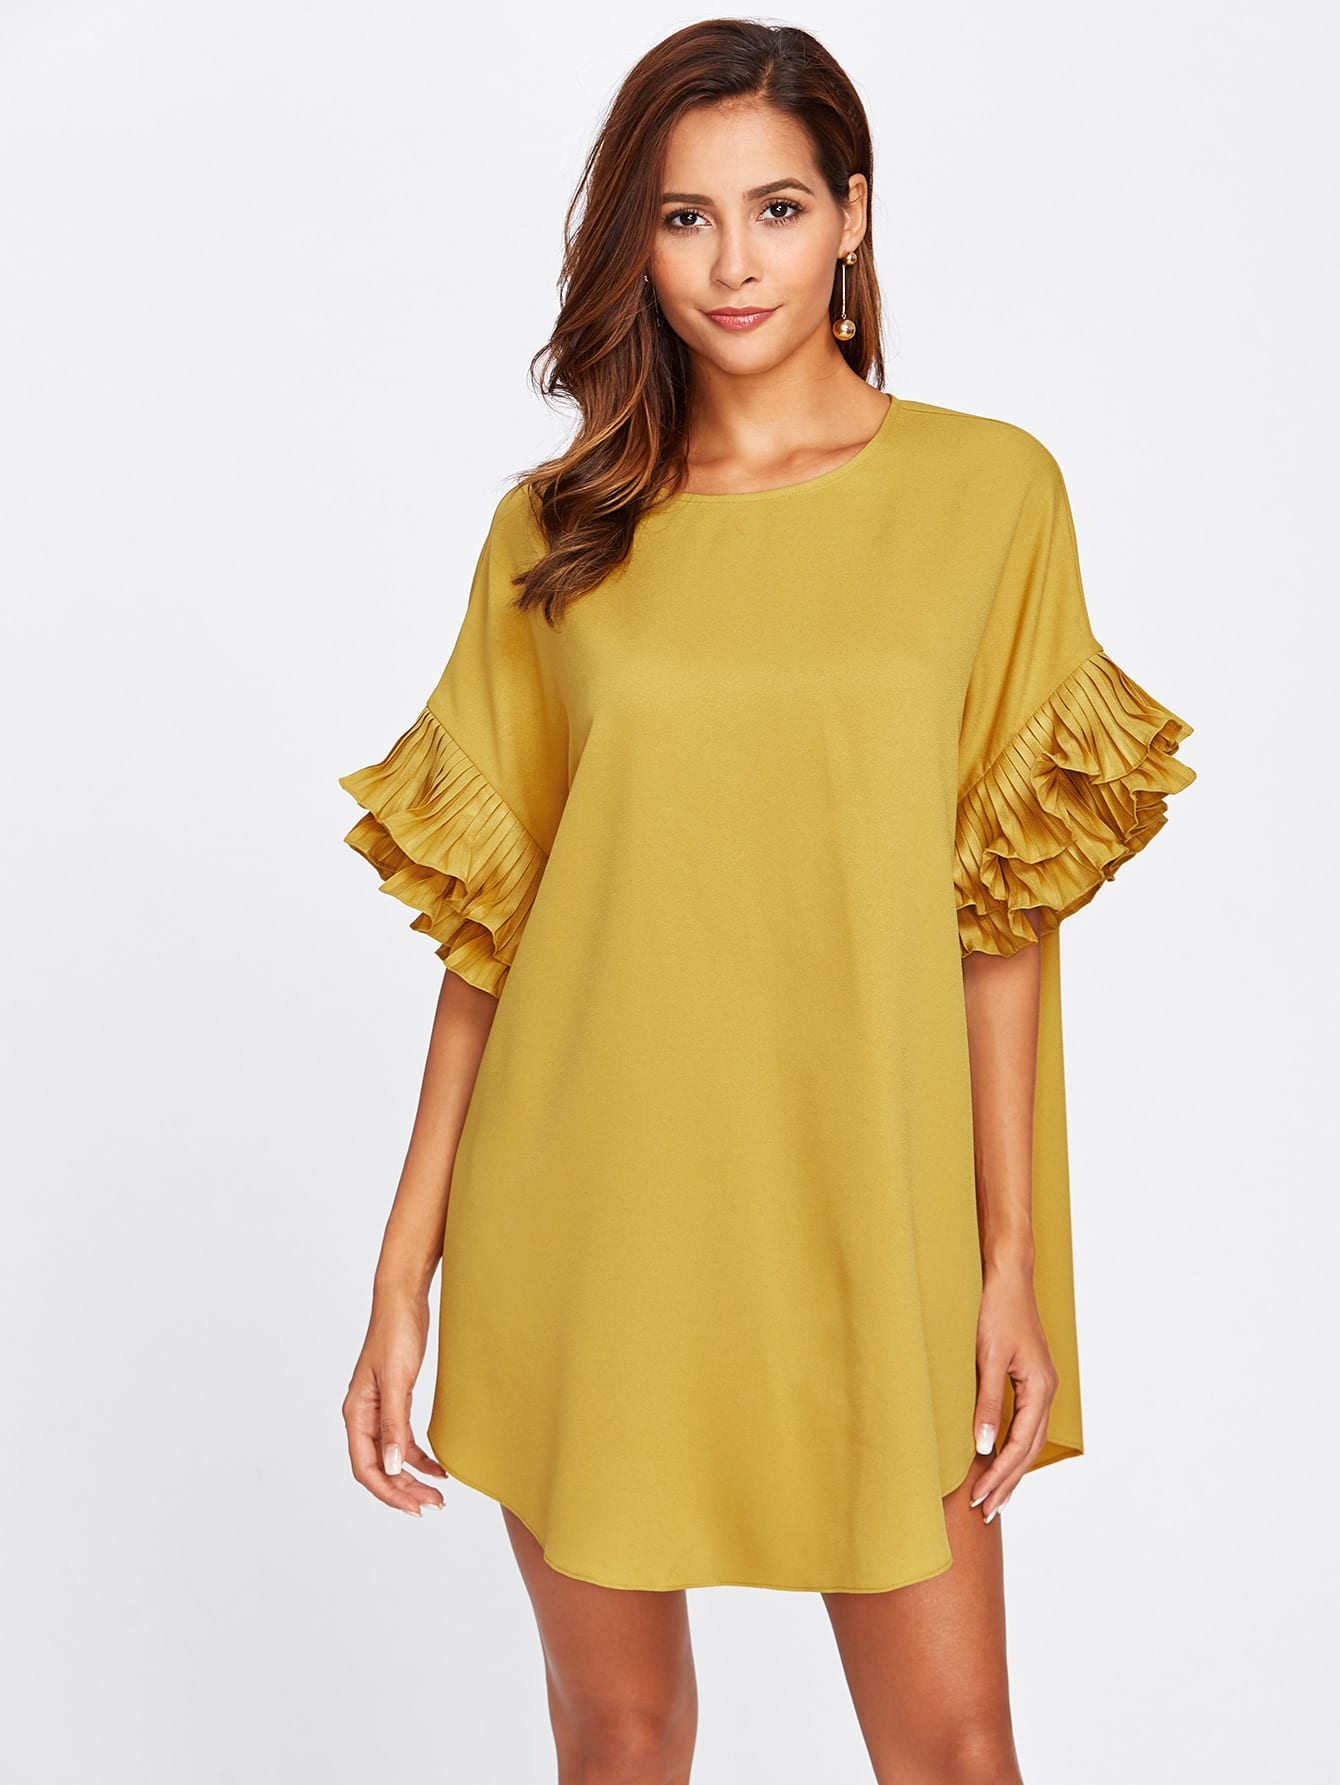 Tiered Pleated Ruffle Cuff Curved Hem Dress tiered pleated cuff solid top